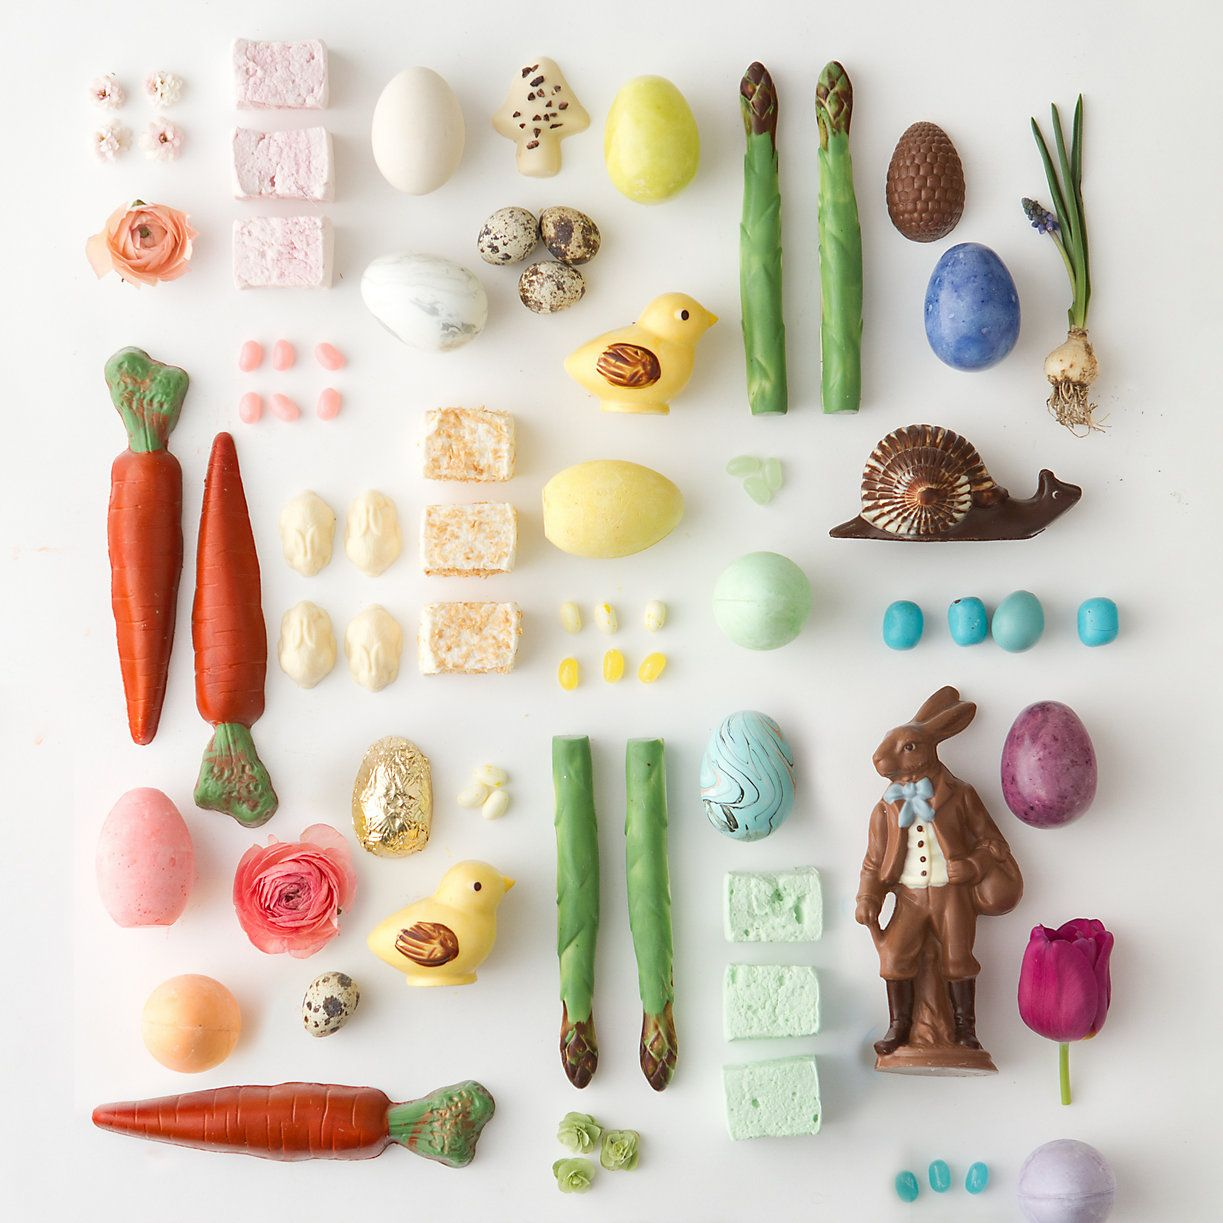 Chocolate Carrot in New Easter at Terrain